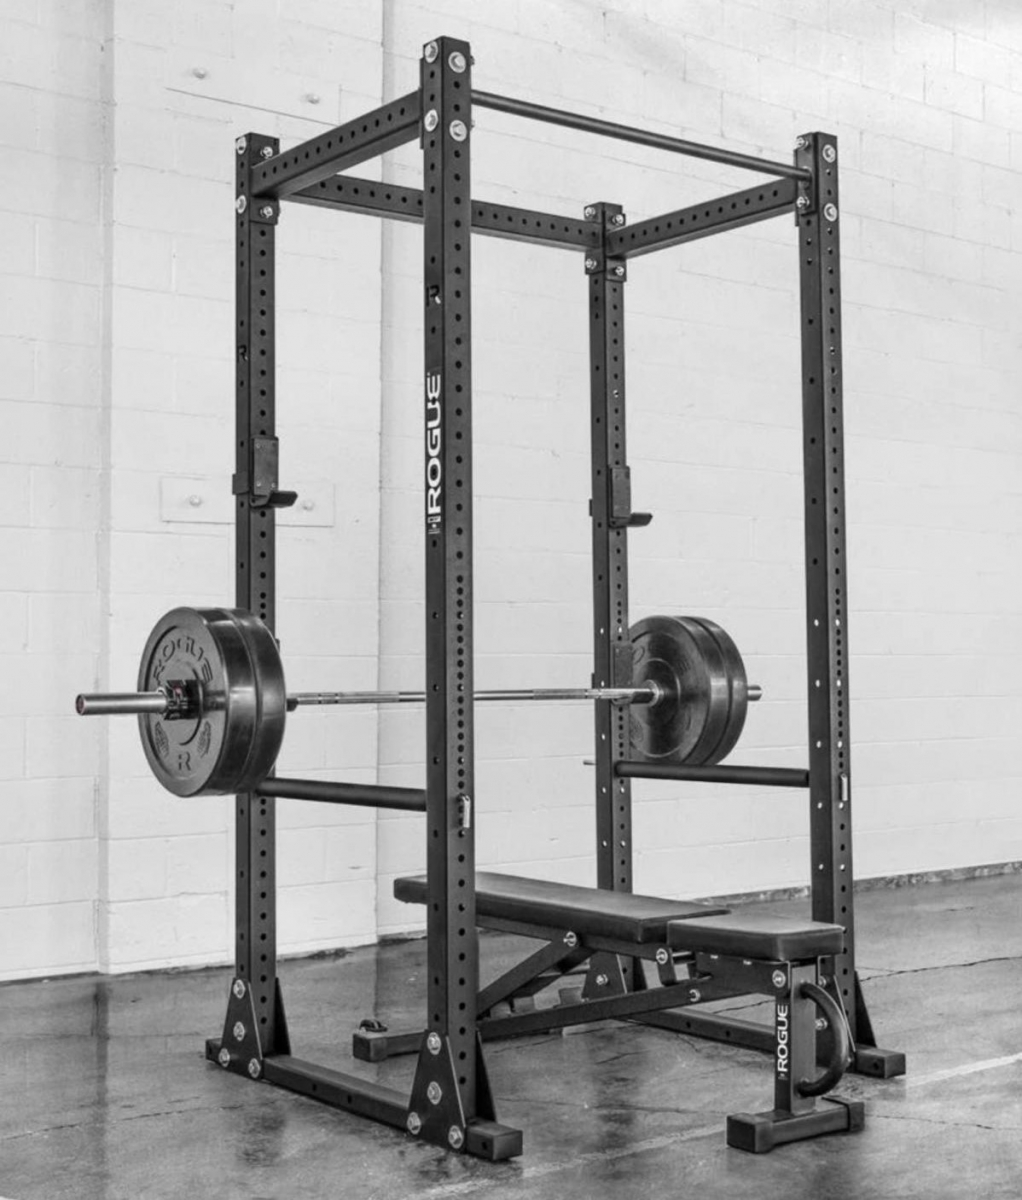 7ft length barbell size best for a power rack